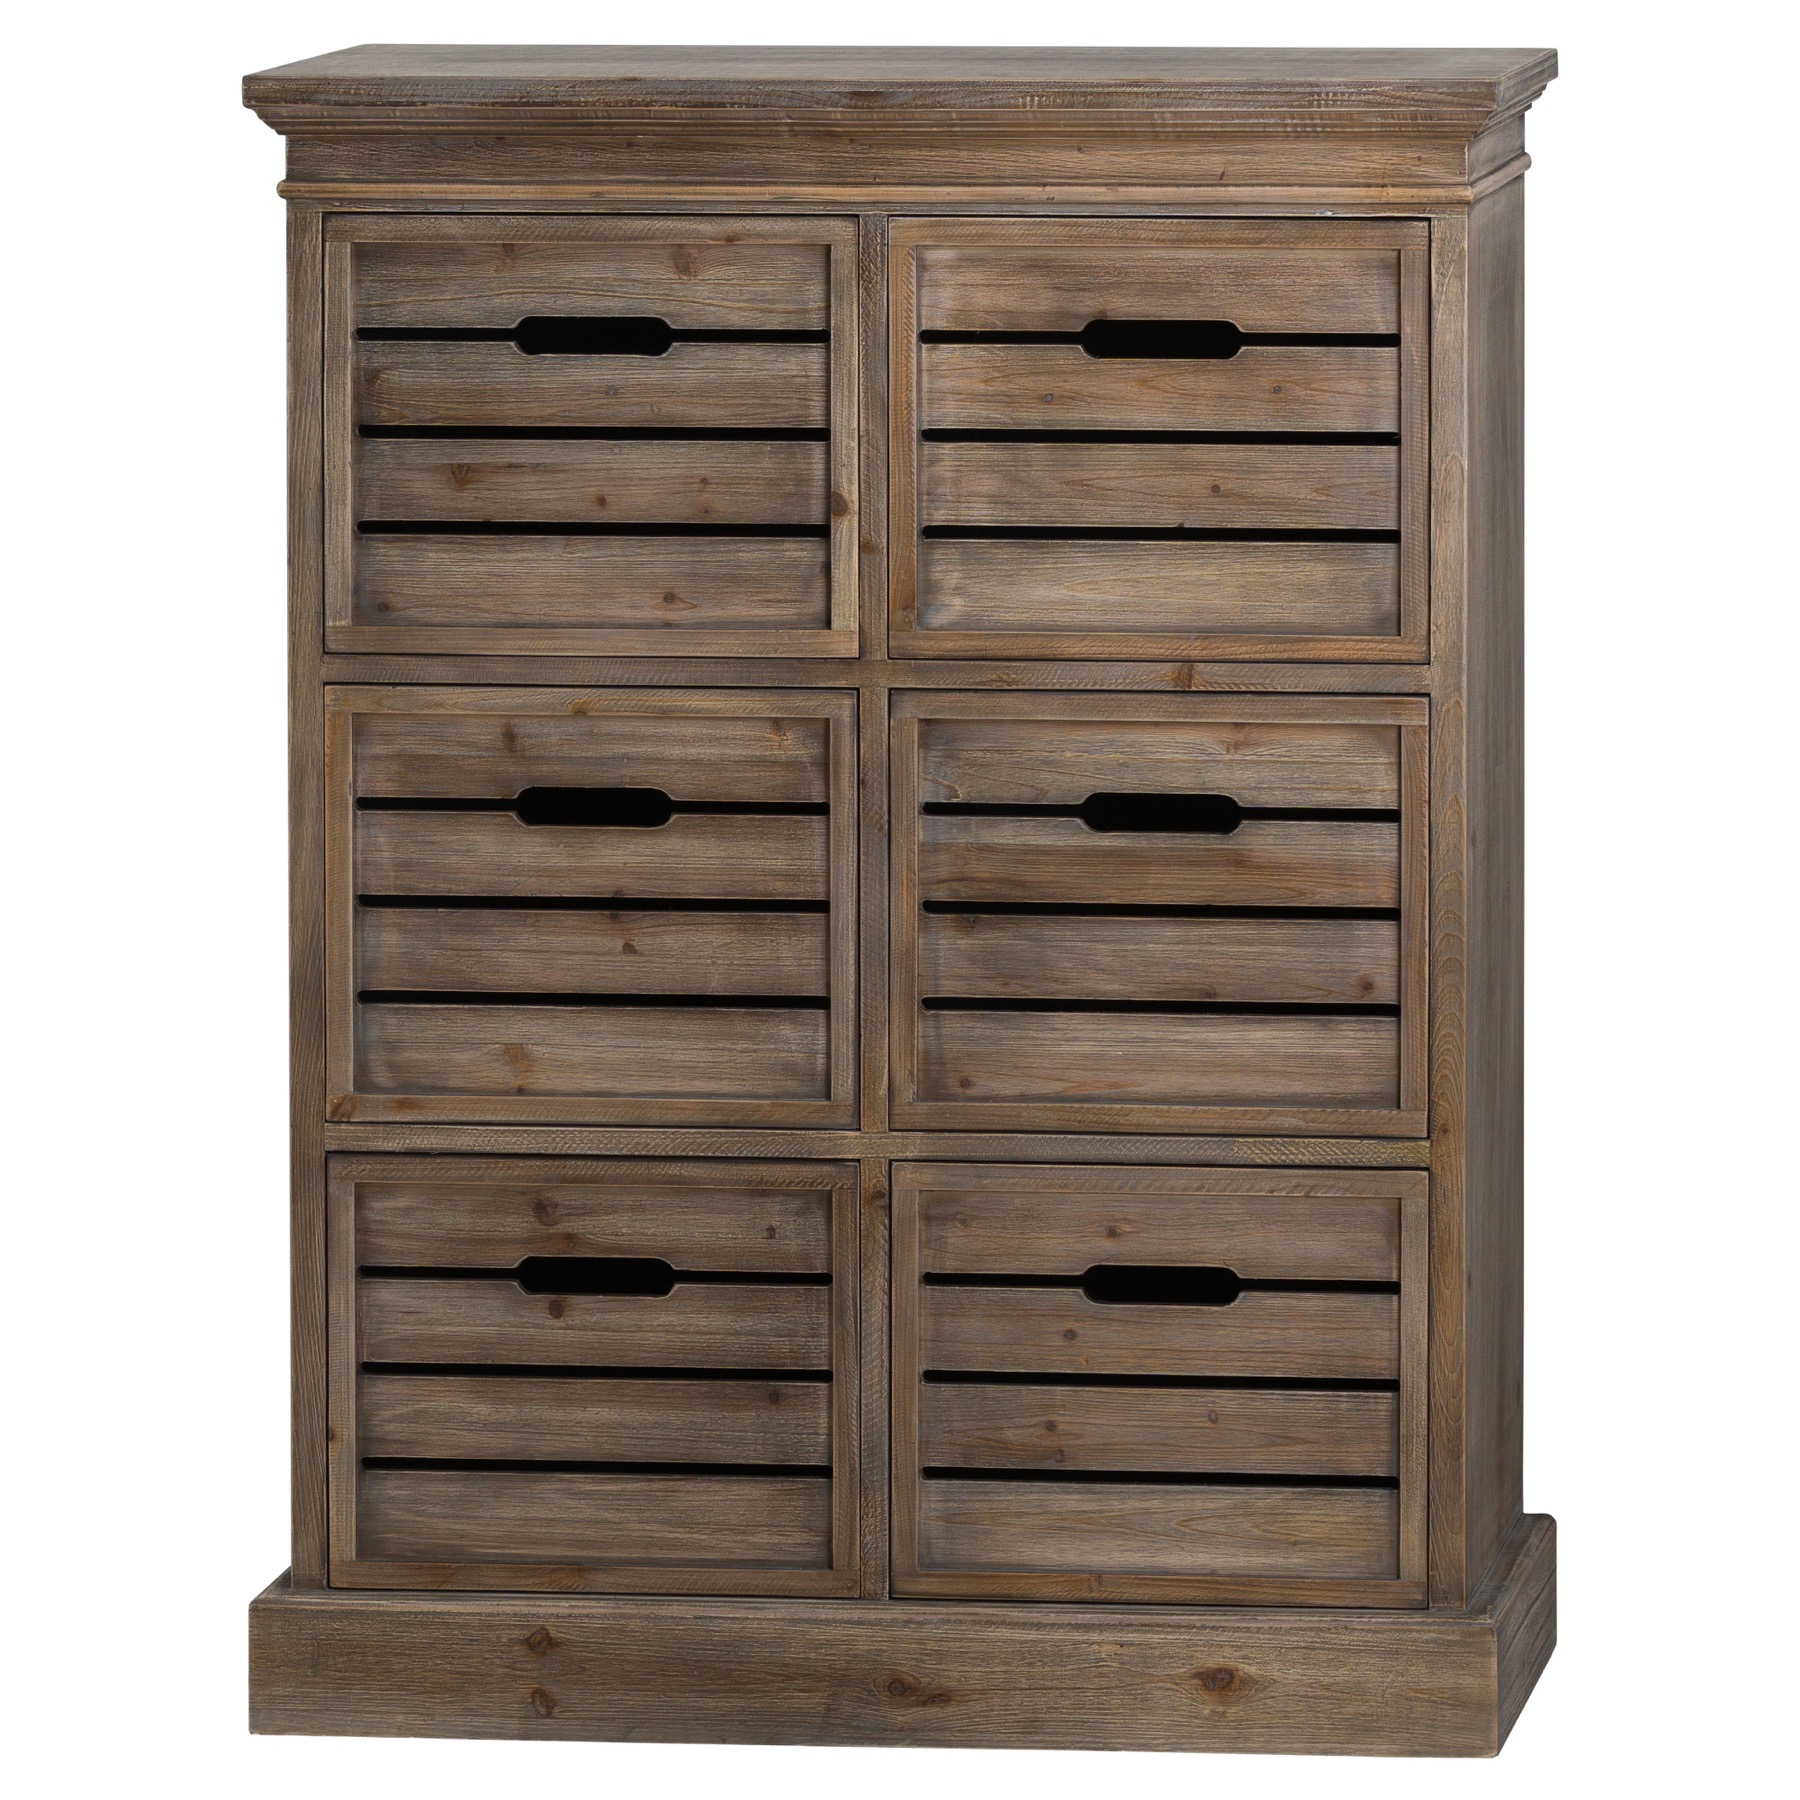 Rustic 6 Drawer Chest of Drawers - Somerset Range